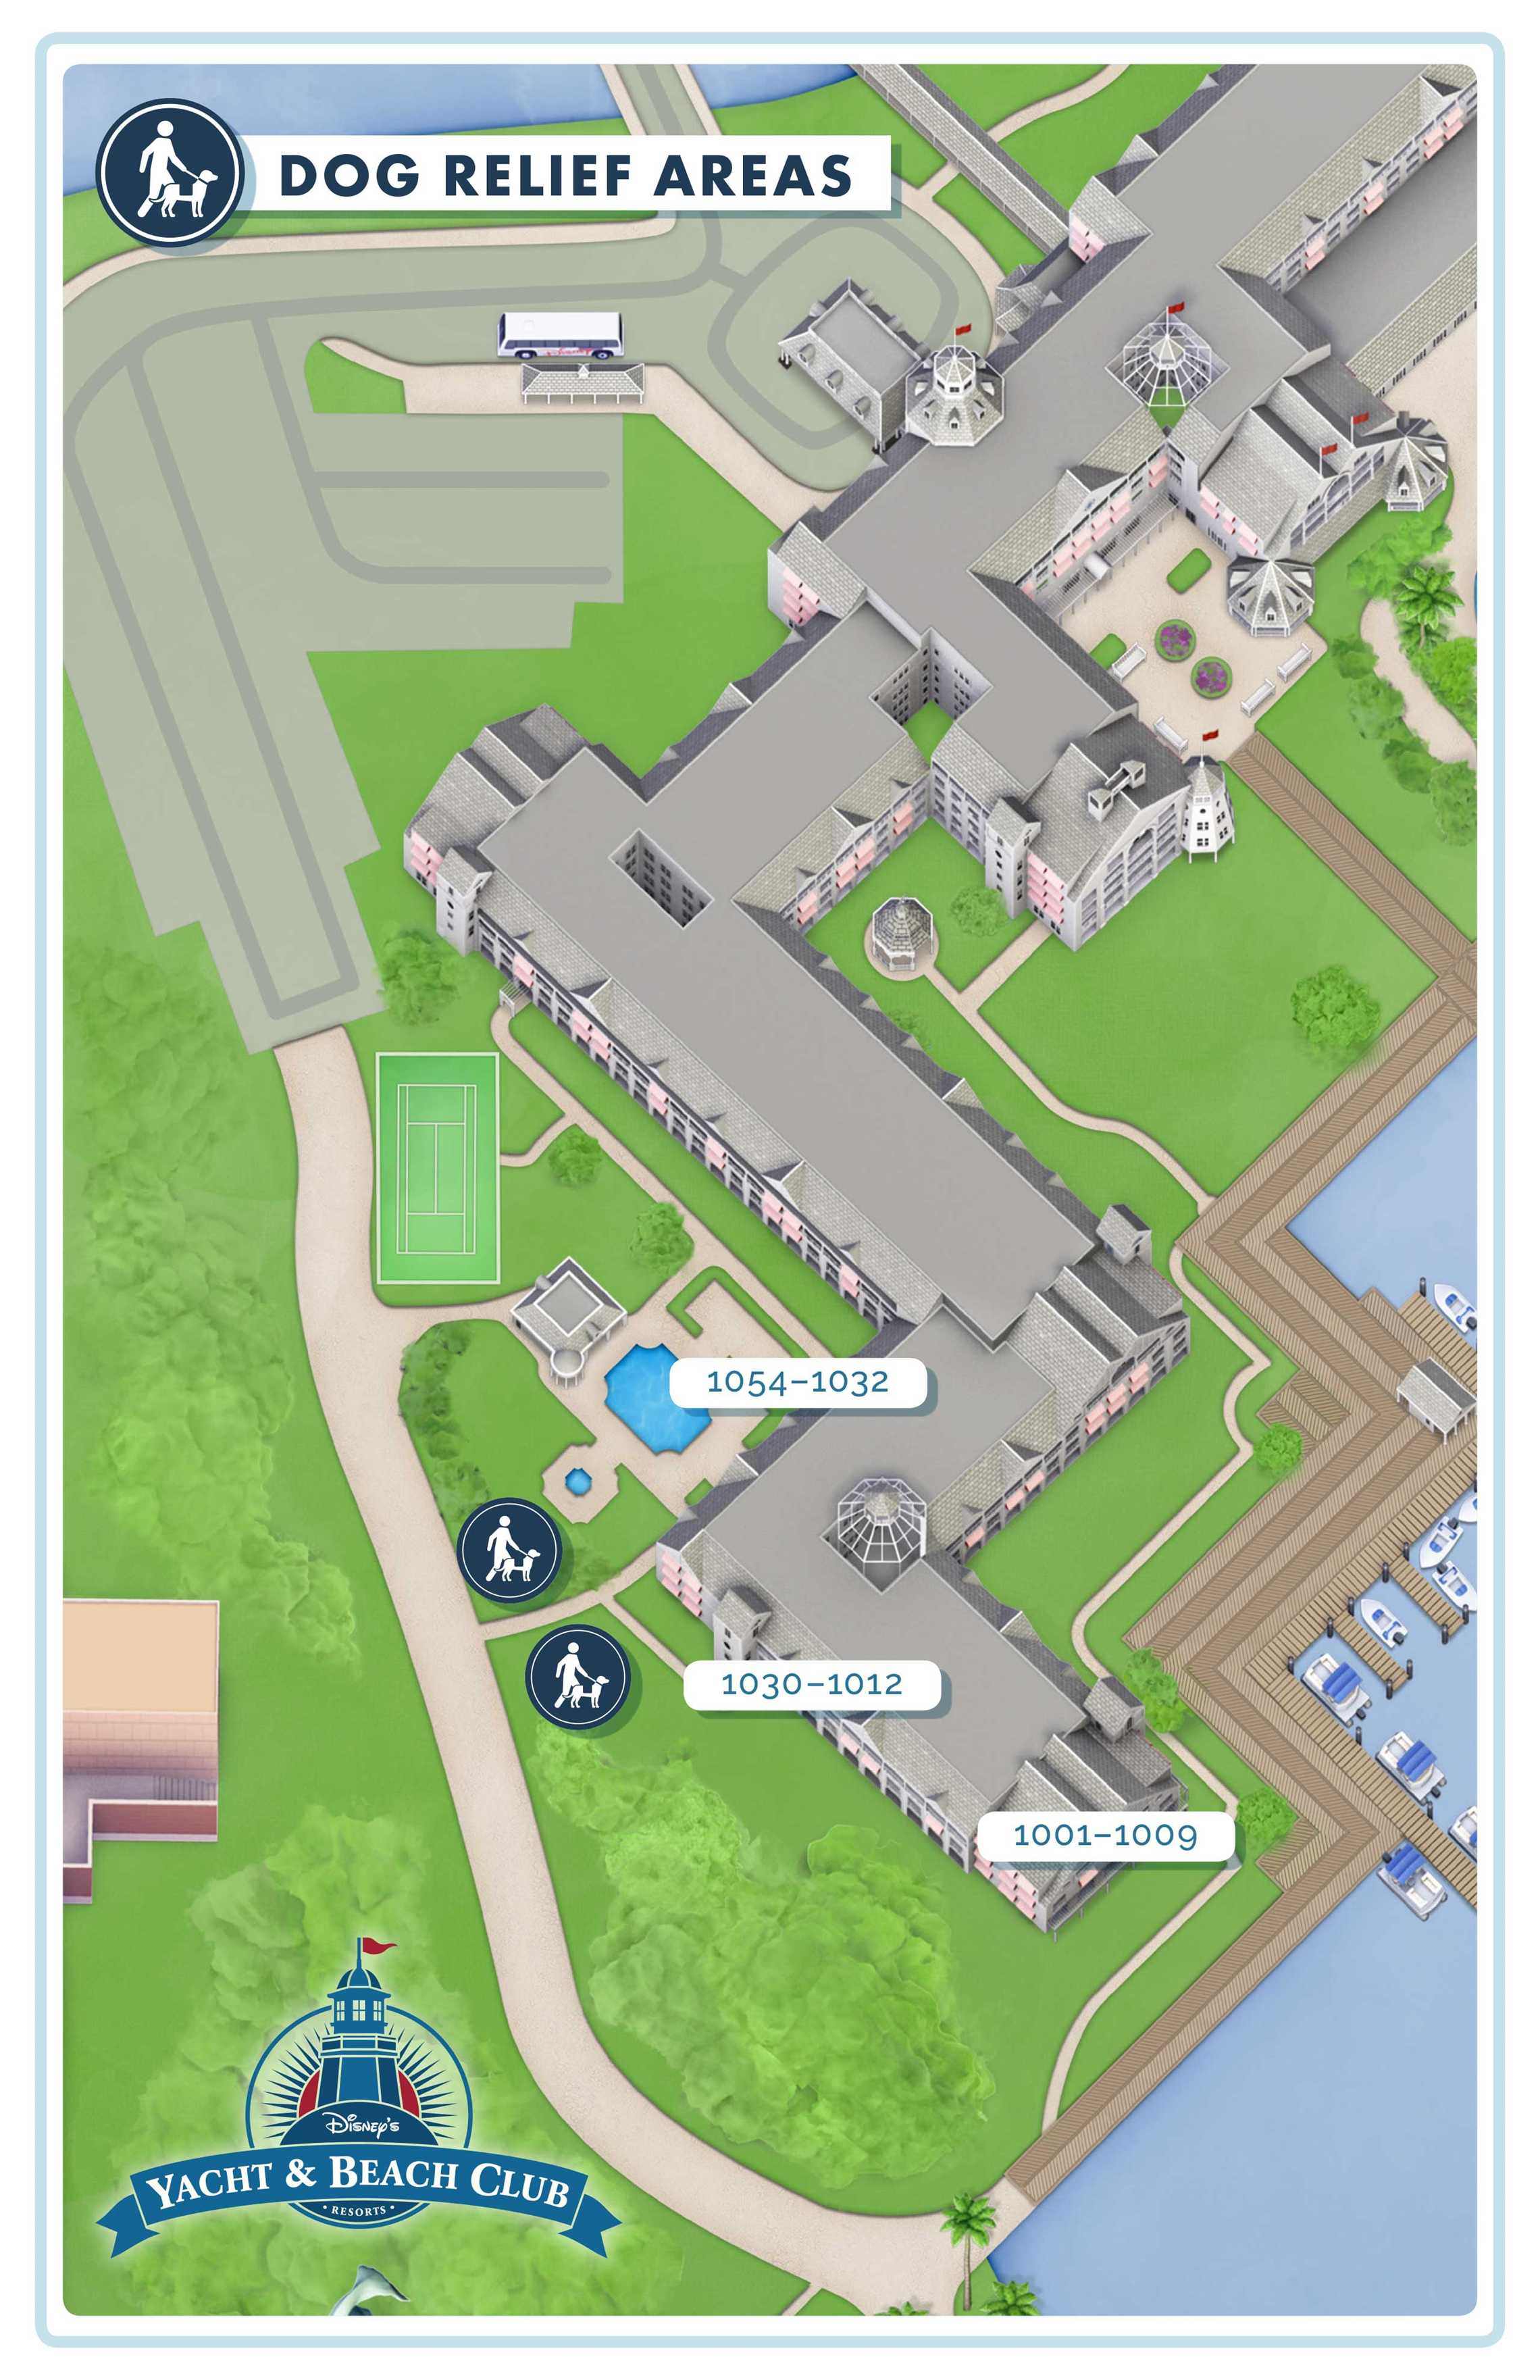 Dog Relief Areas at Yacht Club Resort